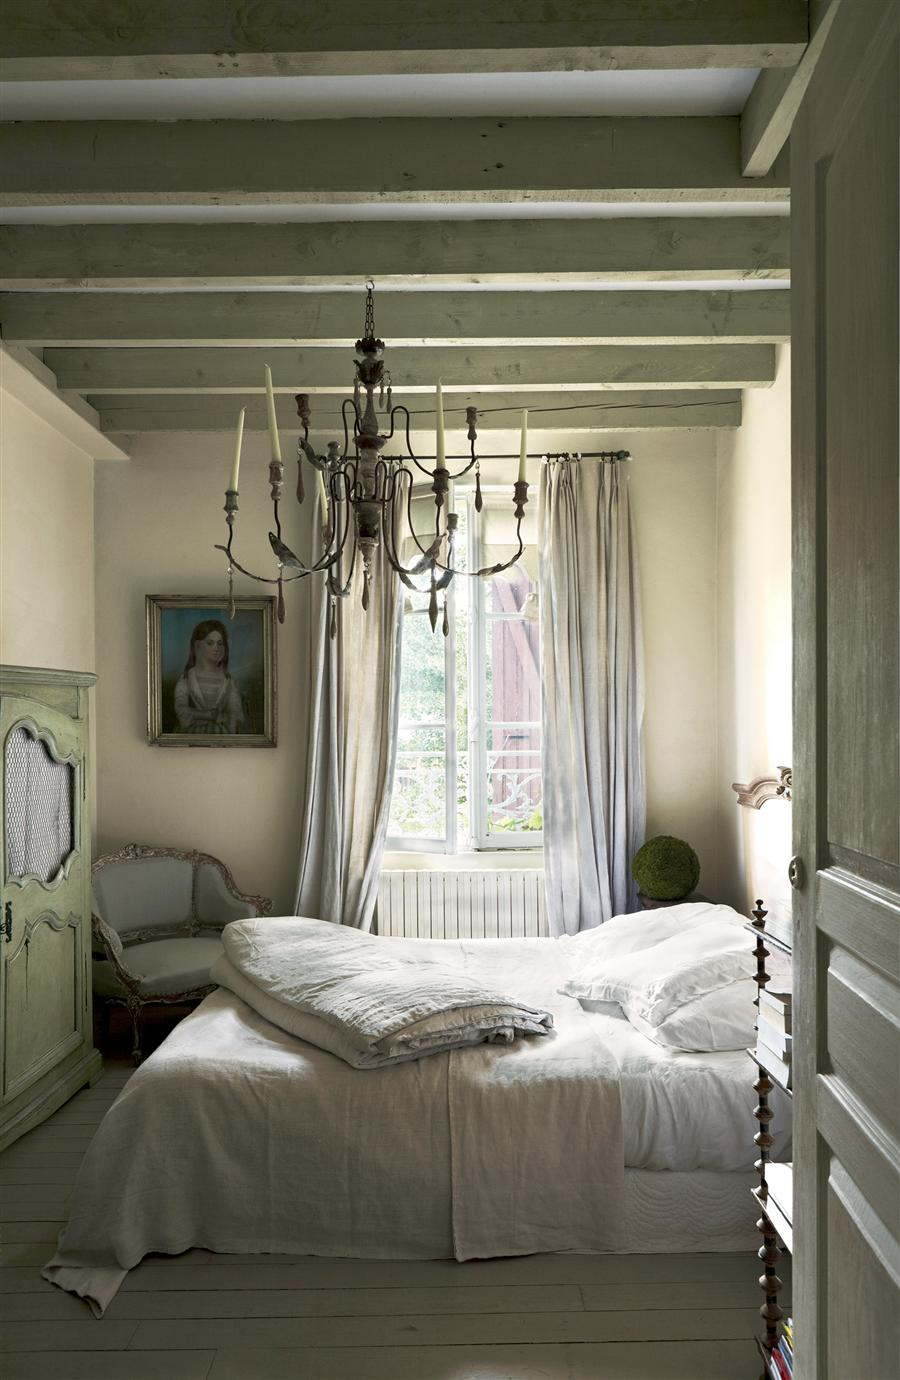 A Quiet And Serene European Inspired Bedroom With Ceiling Panted Ball Green By Farrow